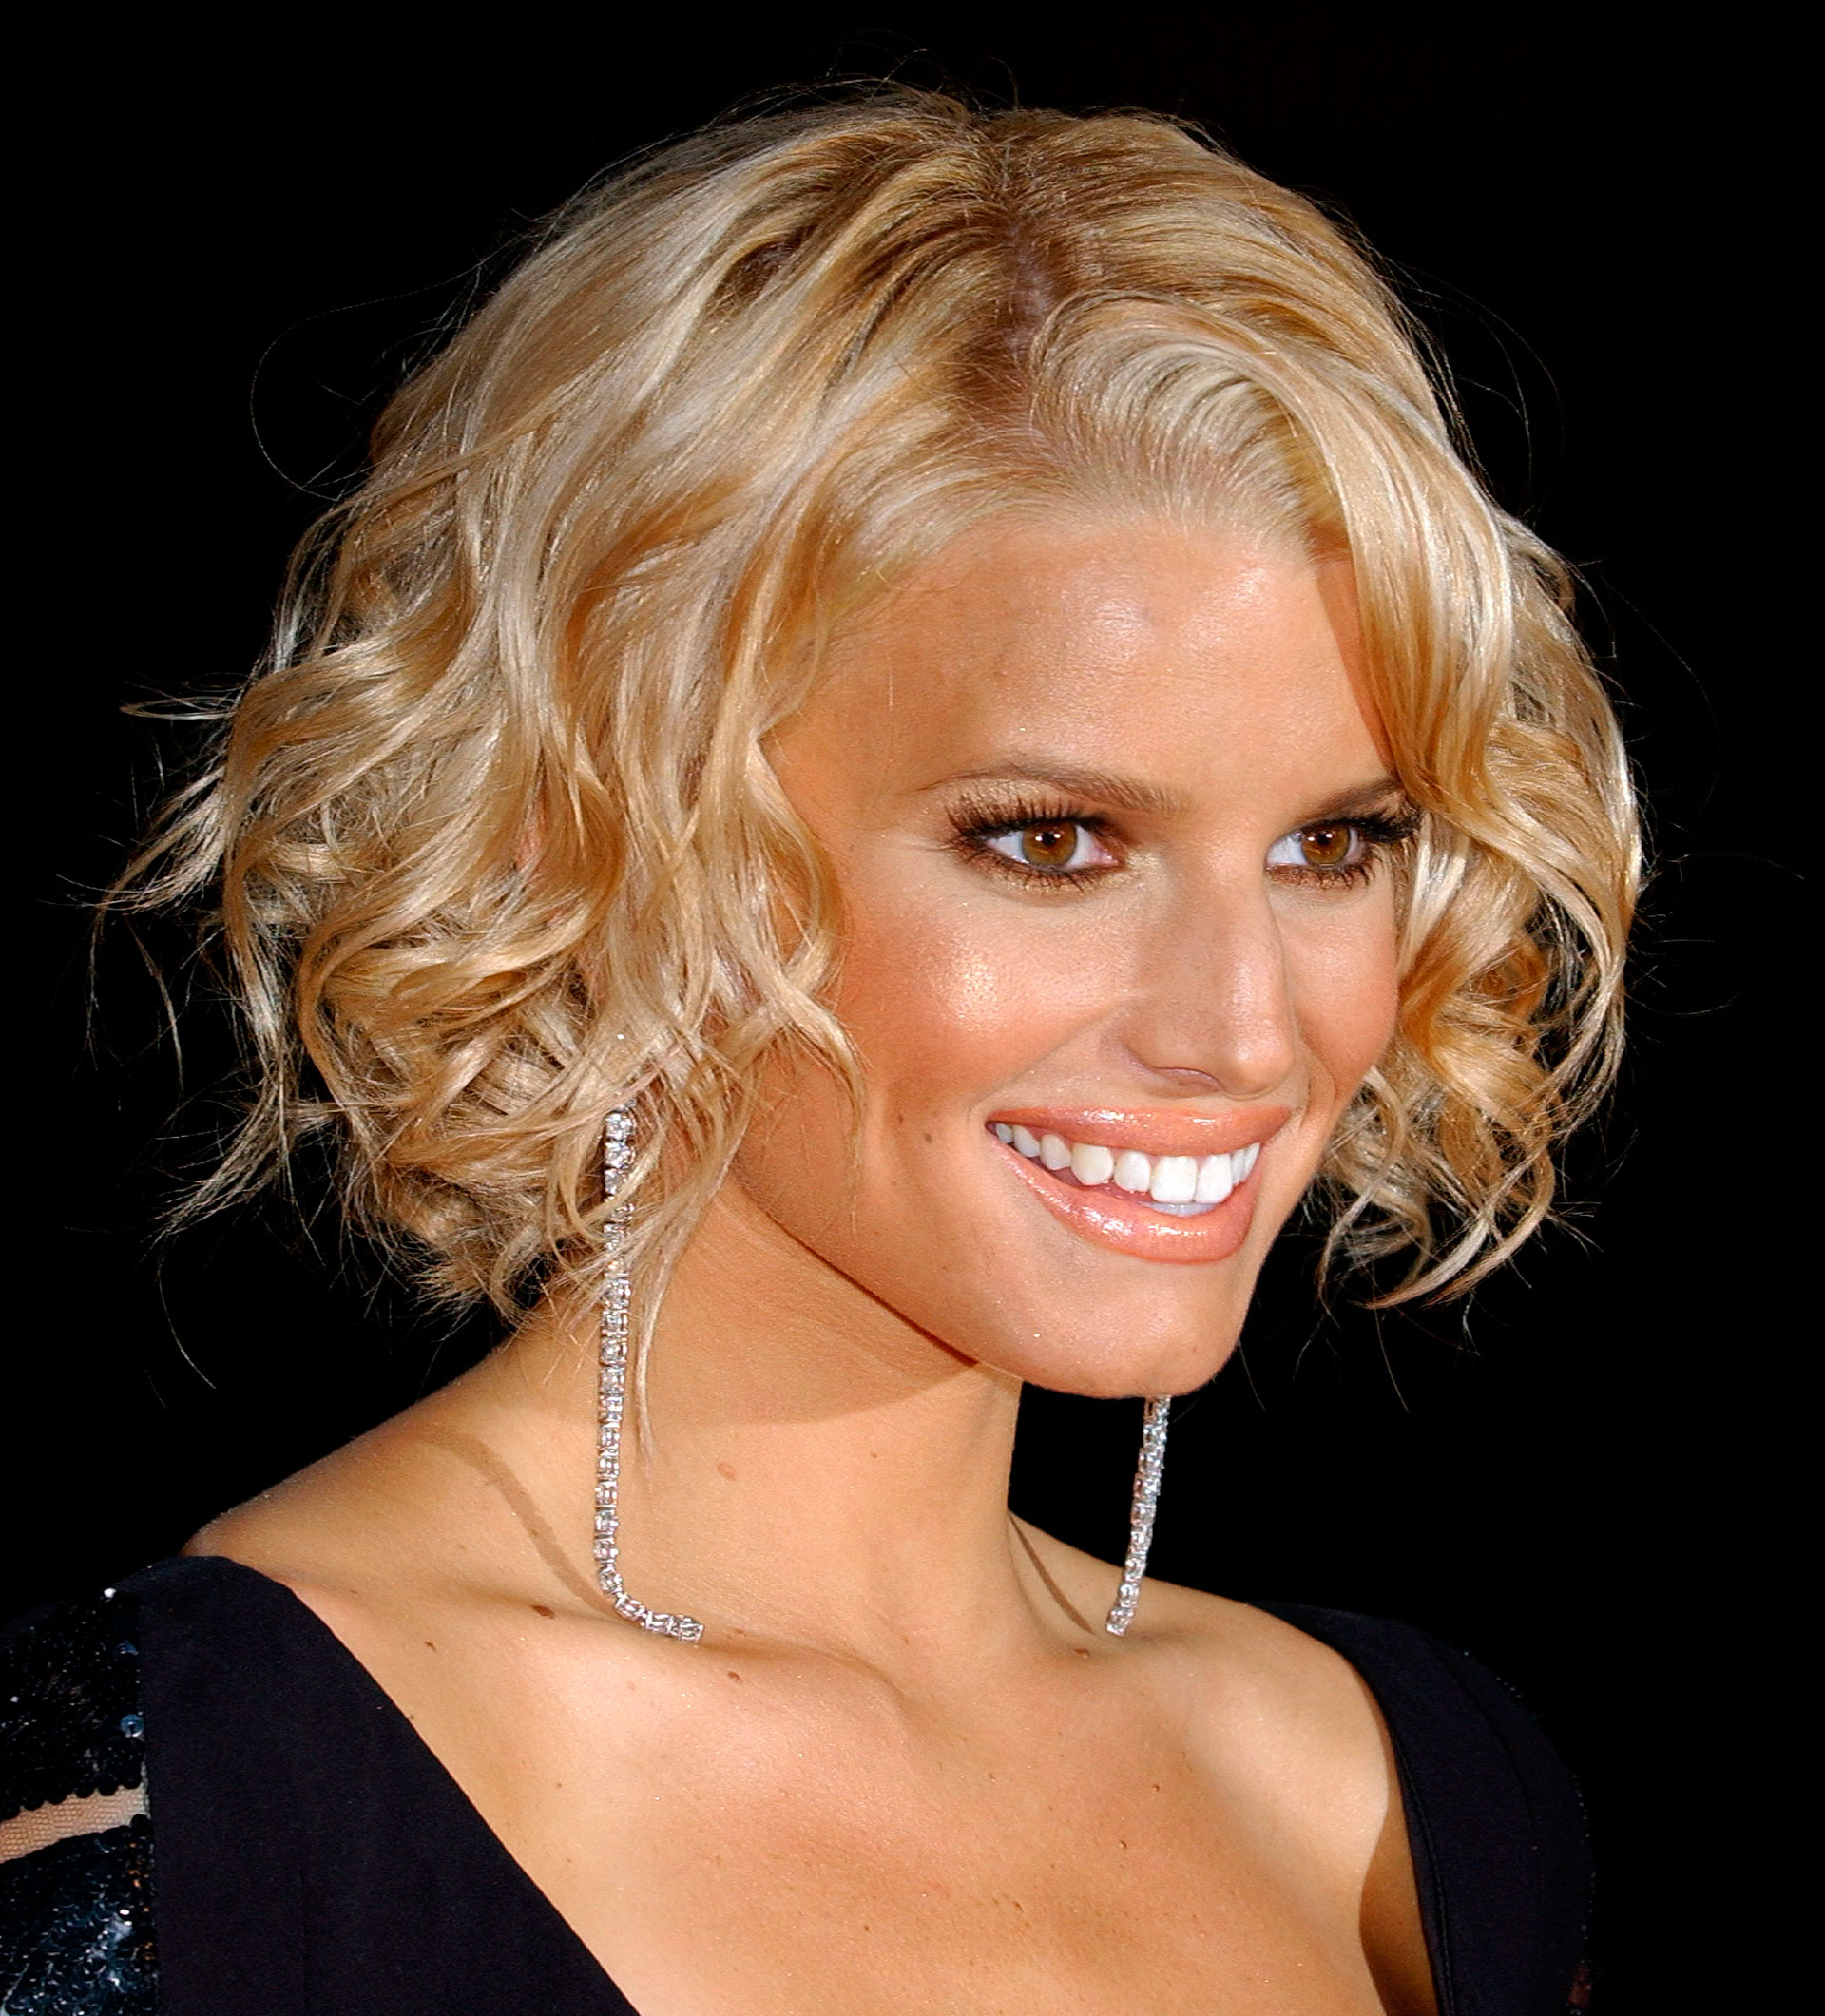 Top 5 Most Iconic Celebrity Hairstyles of All Time ...